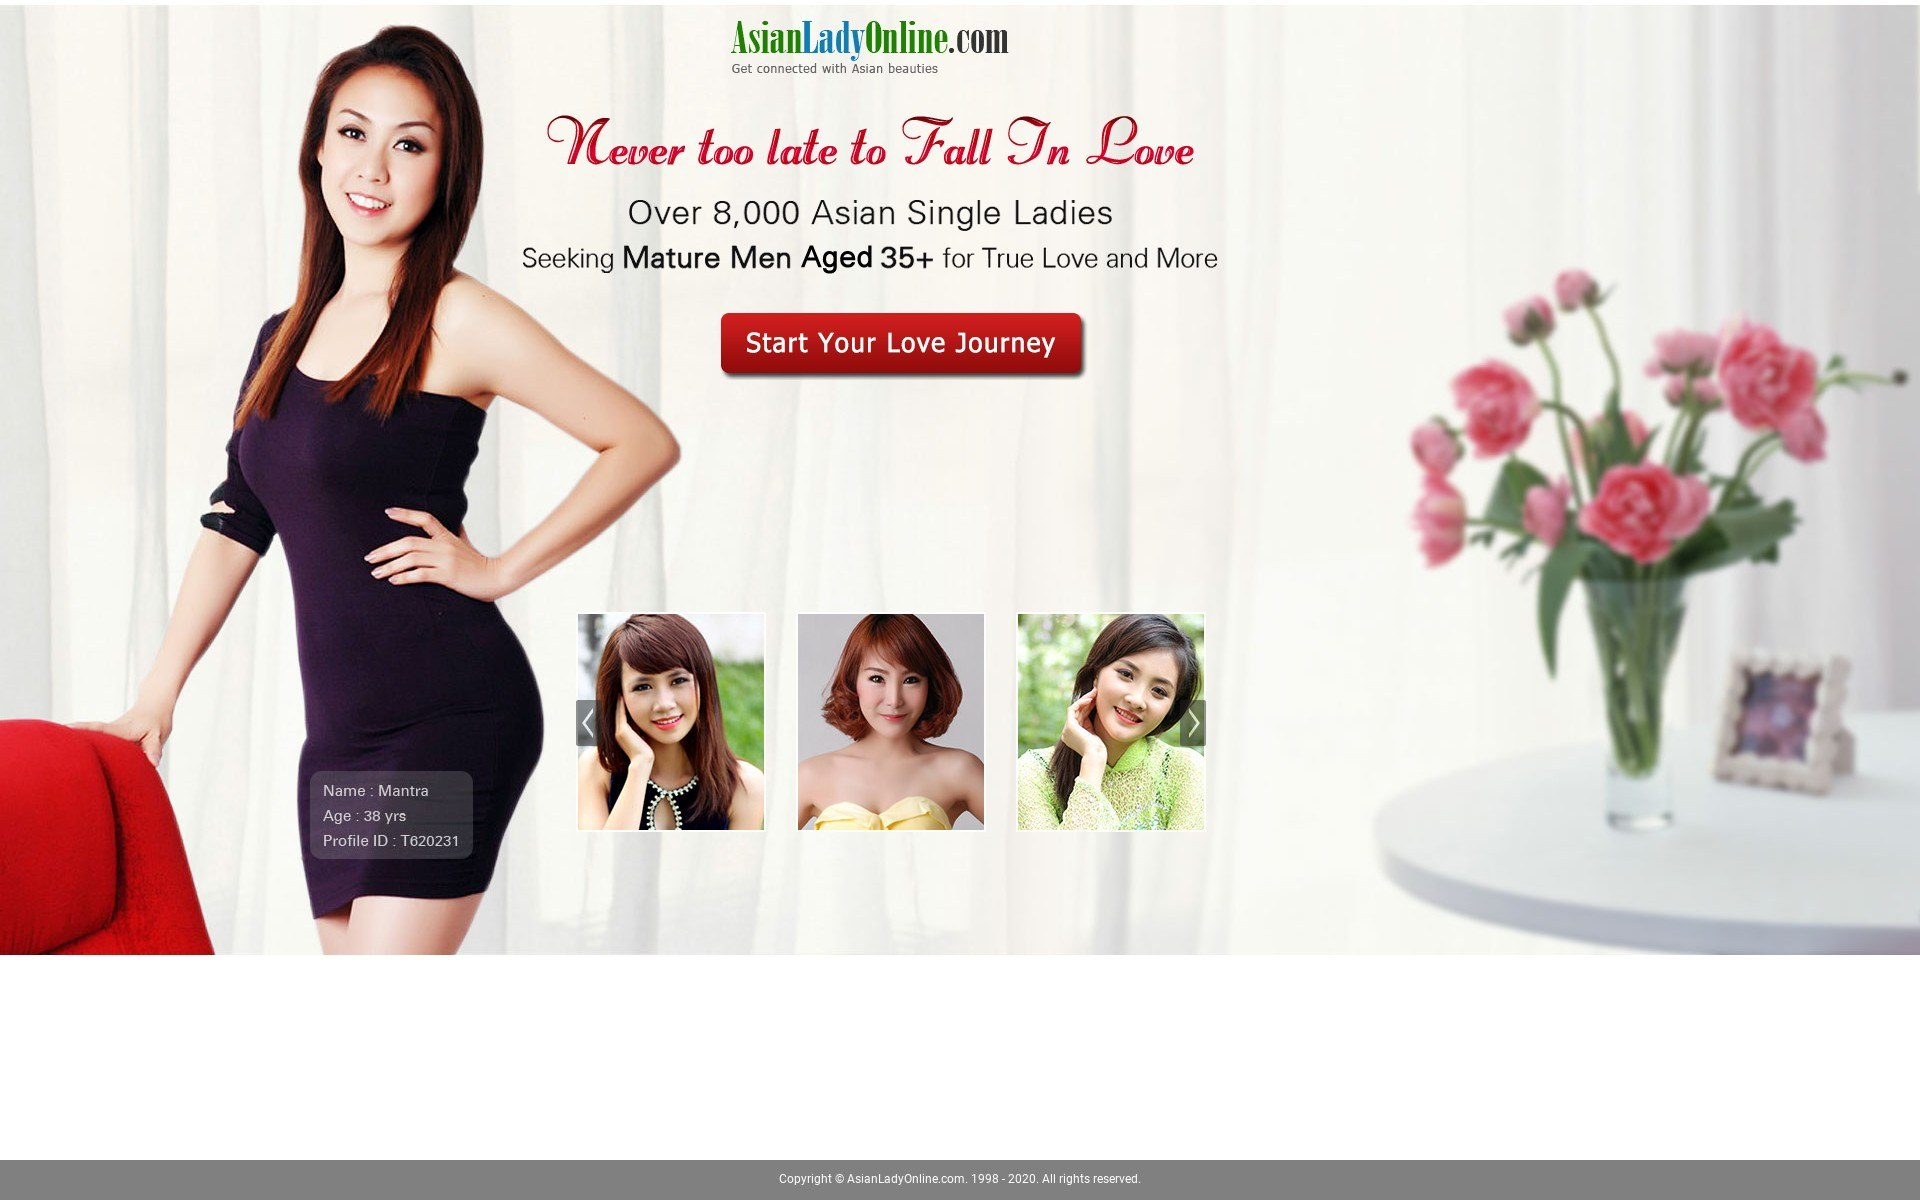 Review Asian Lady Online Site